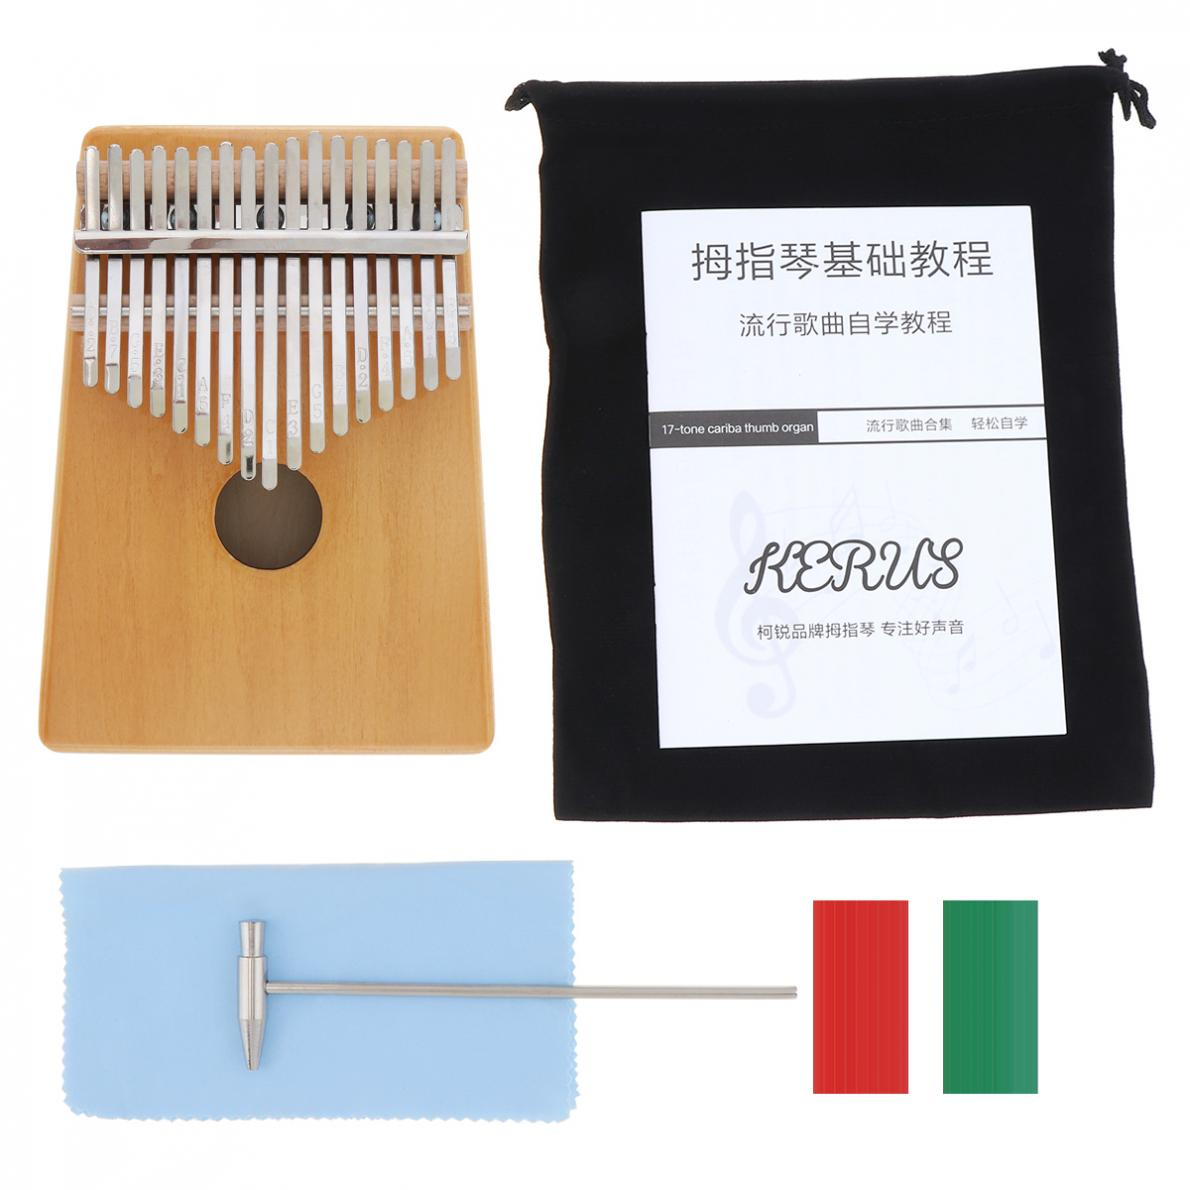 Thumb Piano 17 Keys Thumb Piano Kalimba Single Board Pine Mbira Mini Keyboard Instrument Thumb Piano enlarge